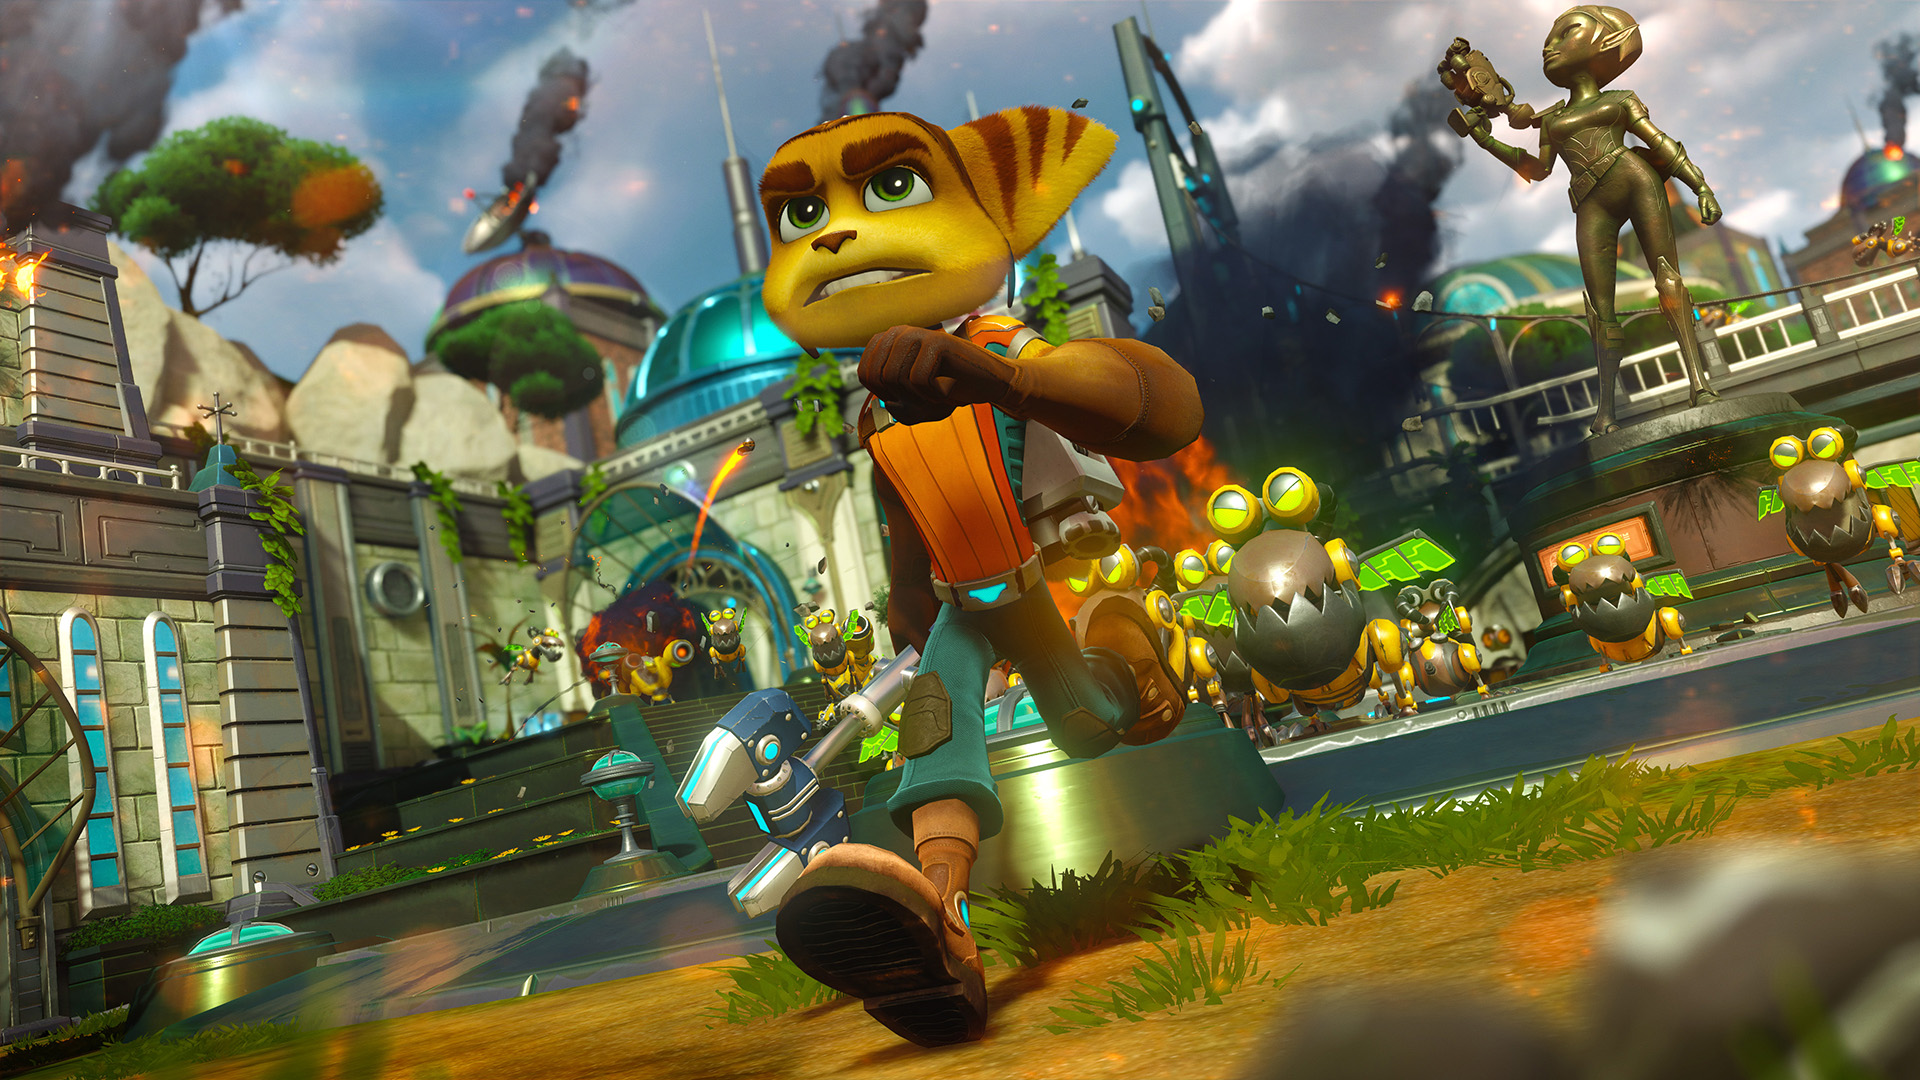 Ratchet & Clank Is A Love Letter To A Treasured Franchise RCPS4 5 nov run